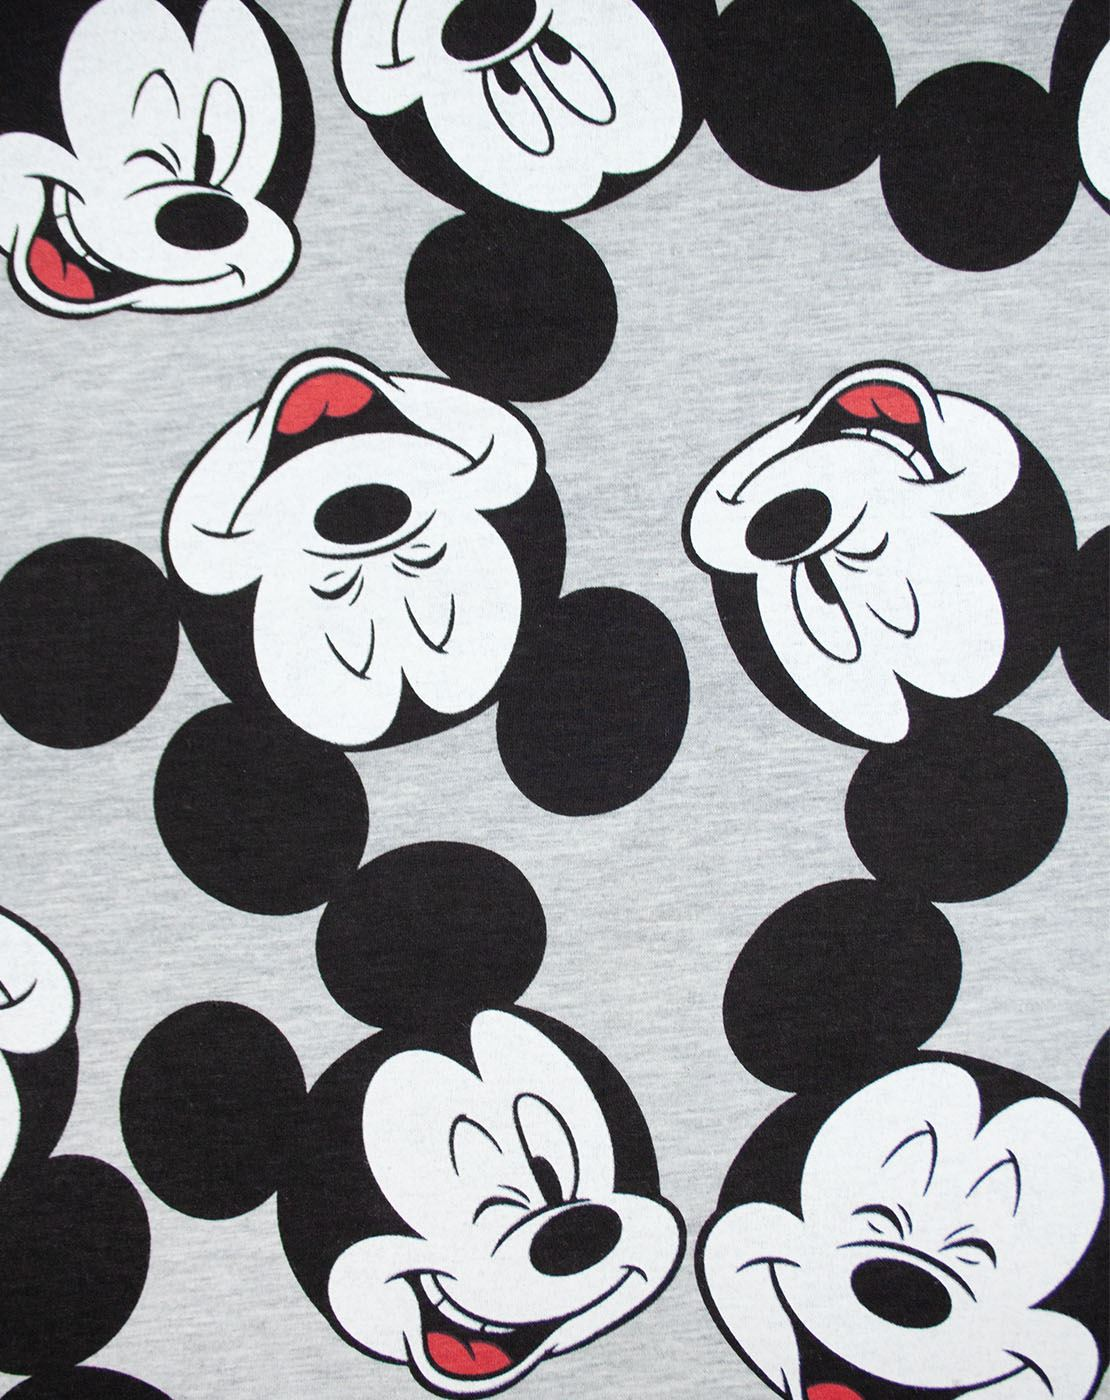 Disney-Mickey-Mouse-Character-All-Over-Women-039-s-Ladies-Boyfriend-Fit-T-Shirt thumbnail 3